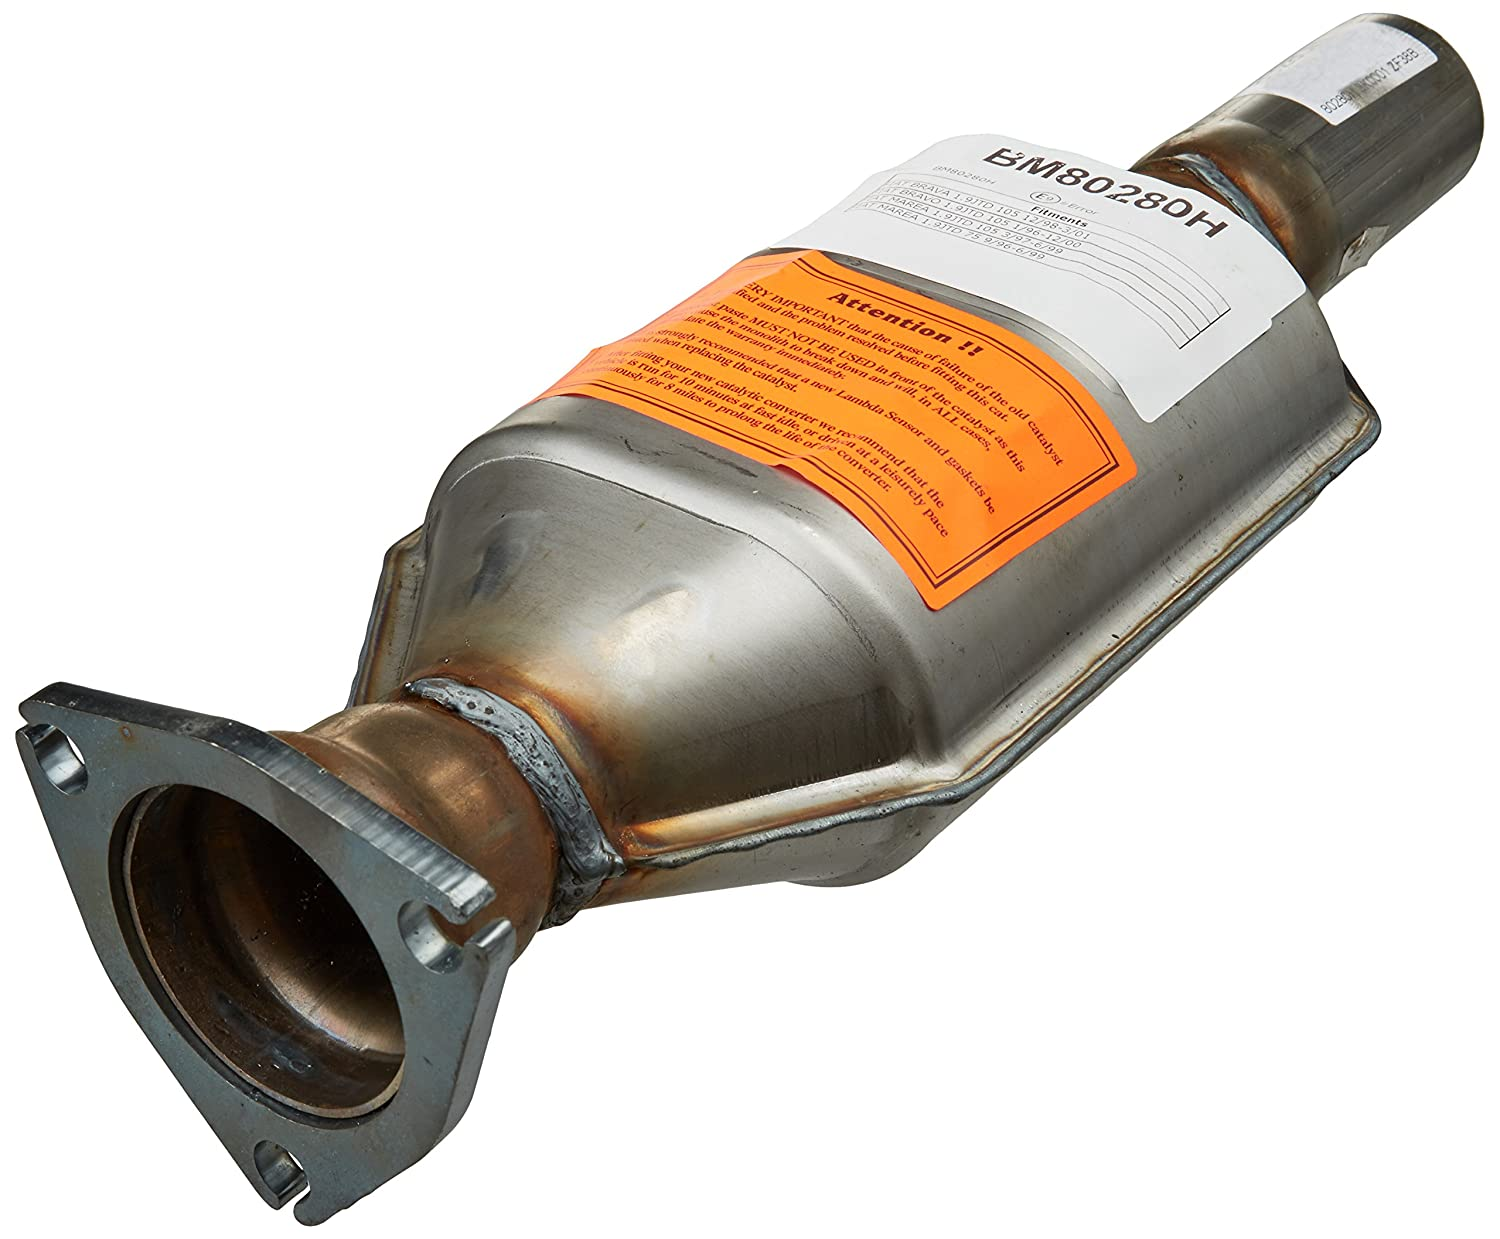 Bm Catalysts BM80280H Catalizzatore Belton Massey Ltd. T/A Bm Catalysts